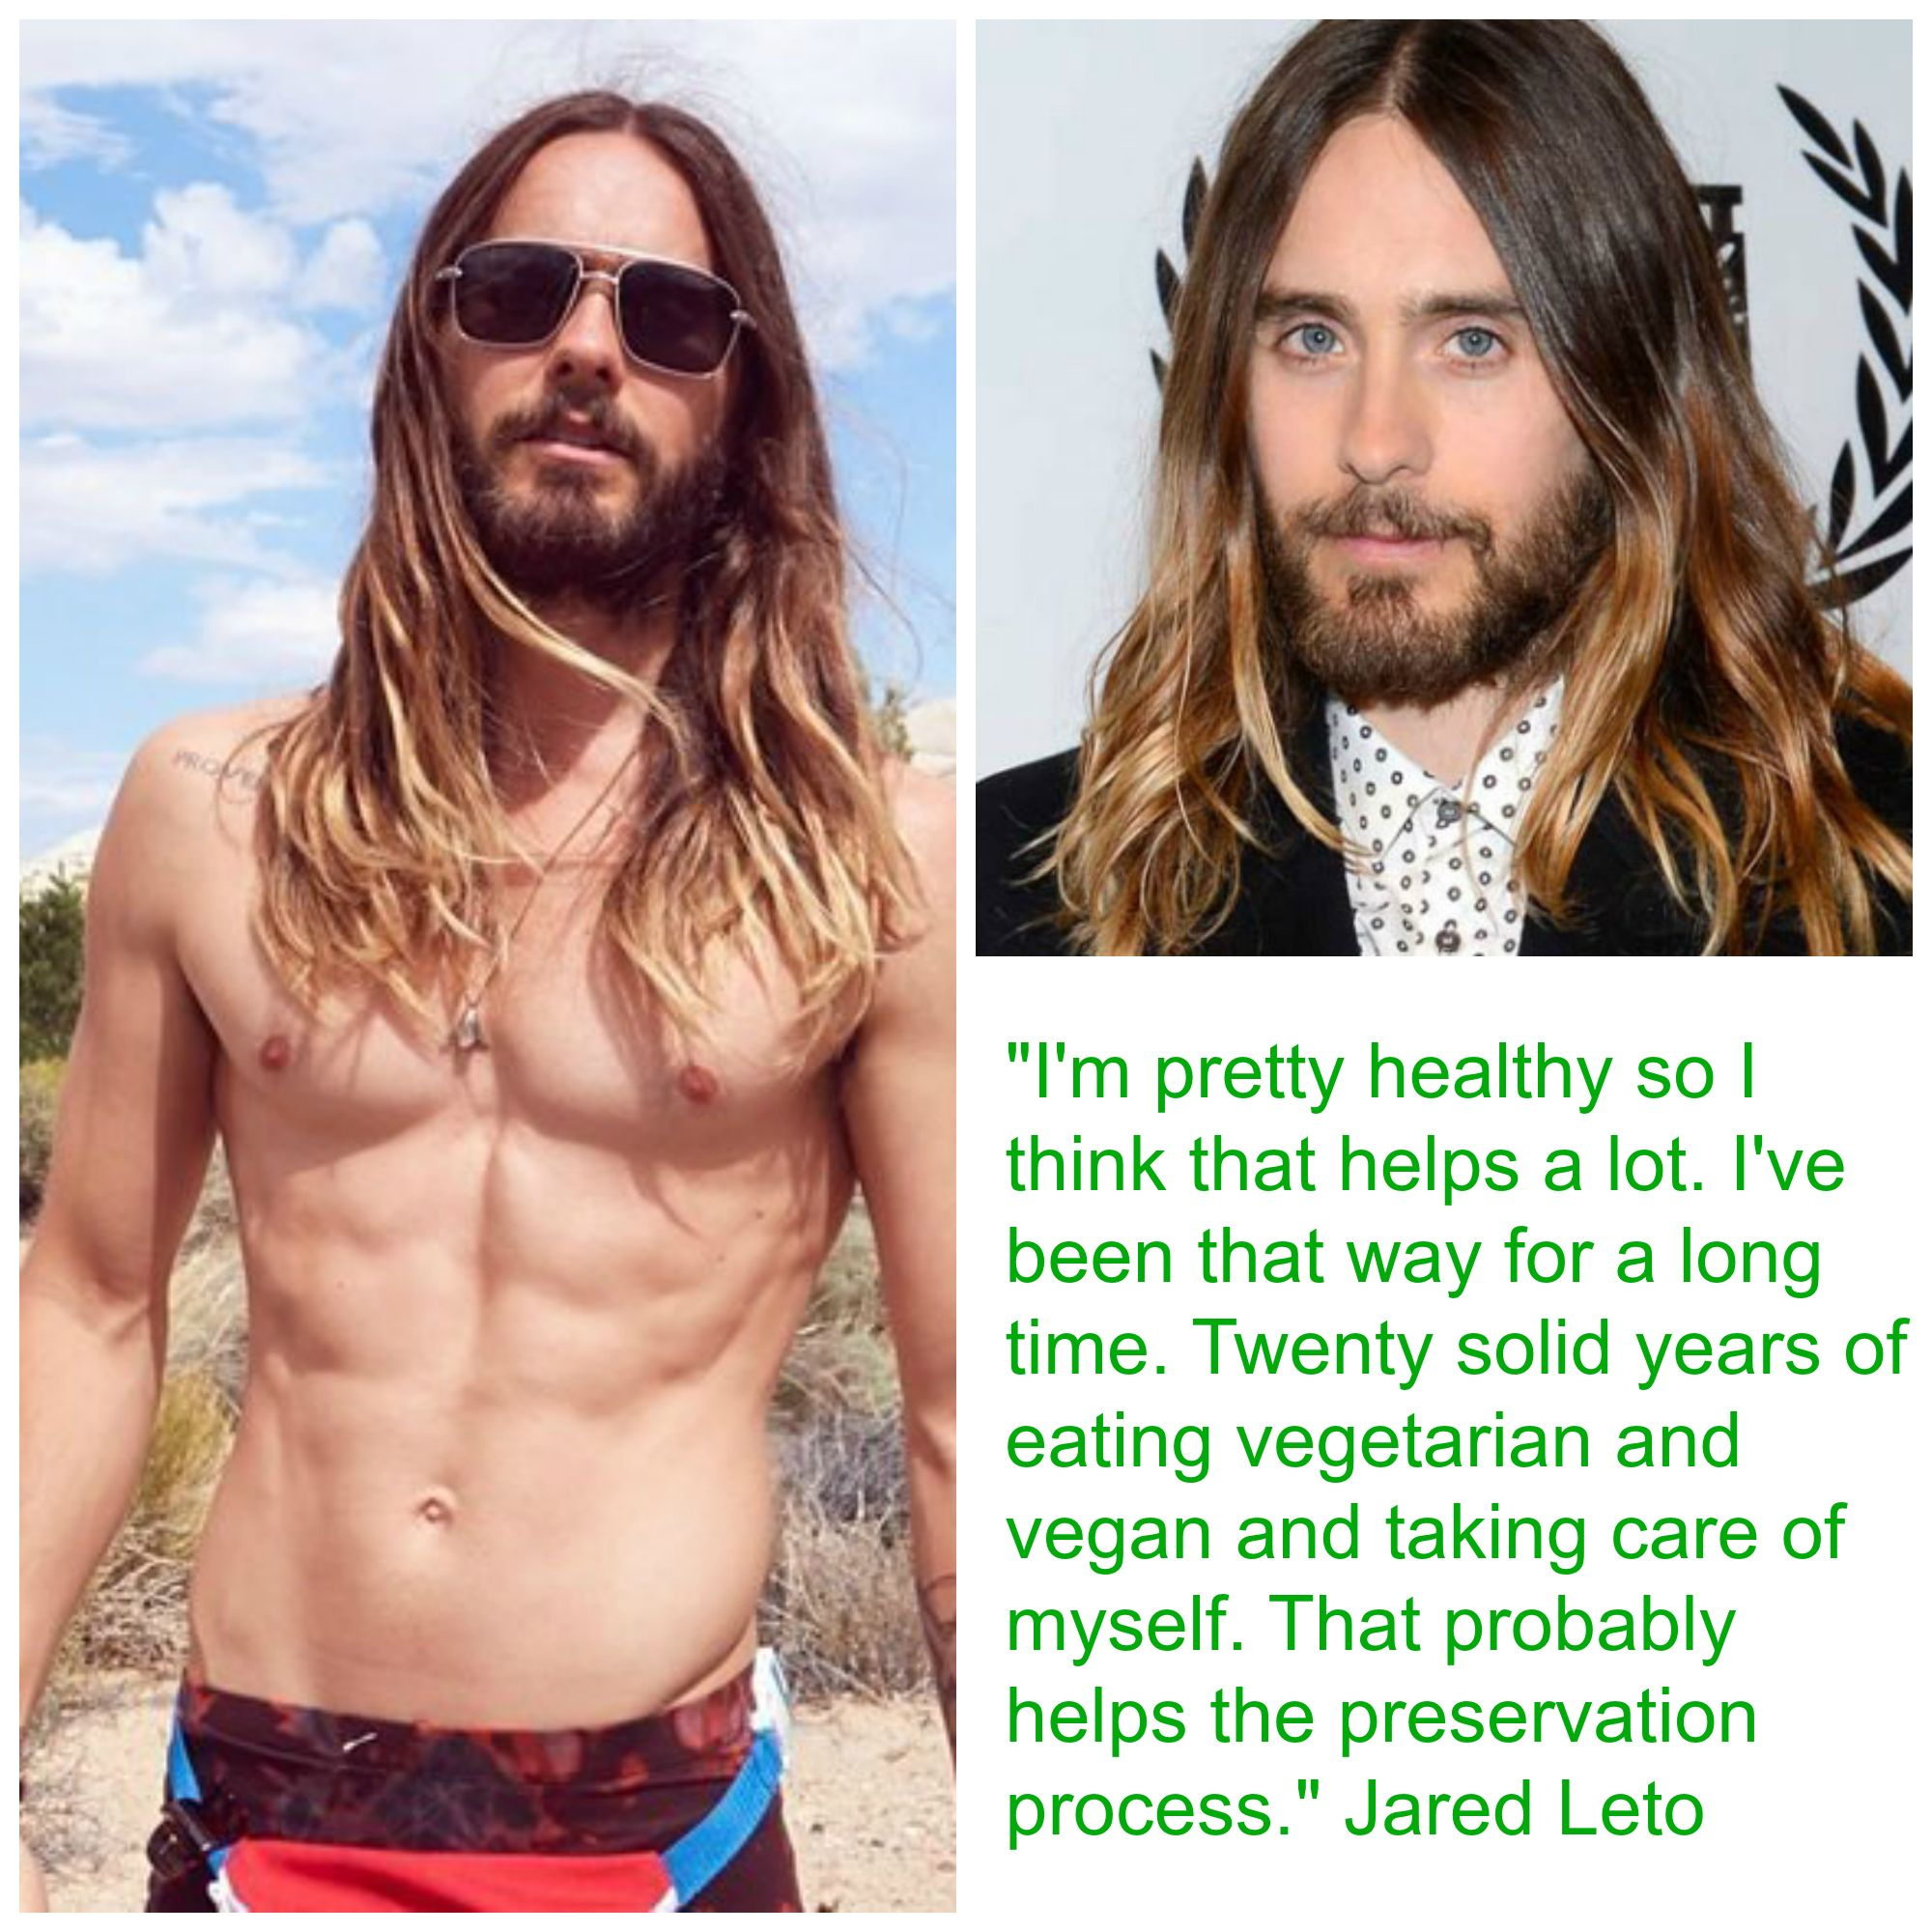 Vegan Jared Leto Credits His Diet And Workouts For His Youthful Good Looks Why Vegan Famous Vegans Vegan Lifestyle